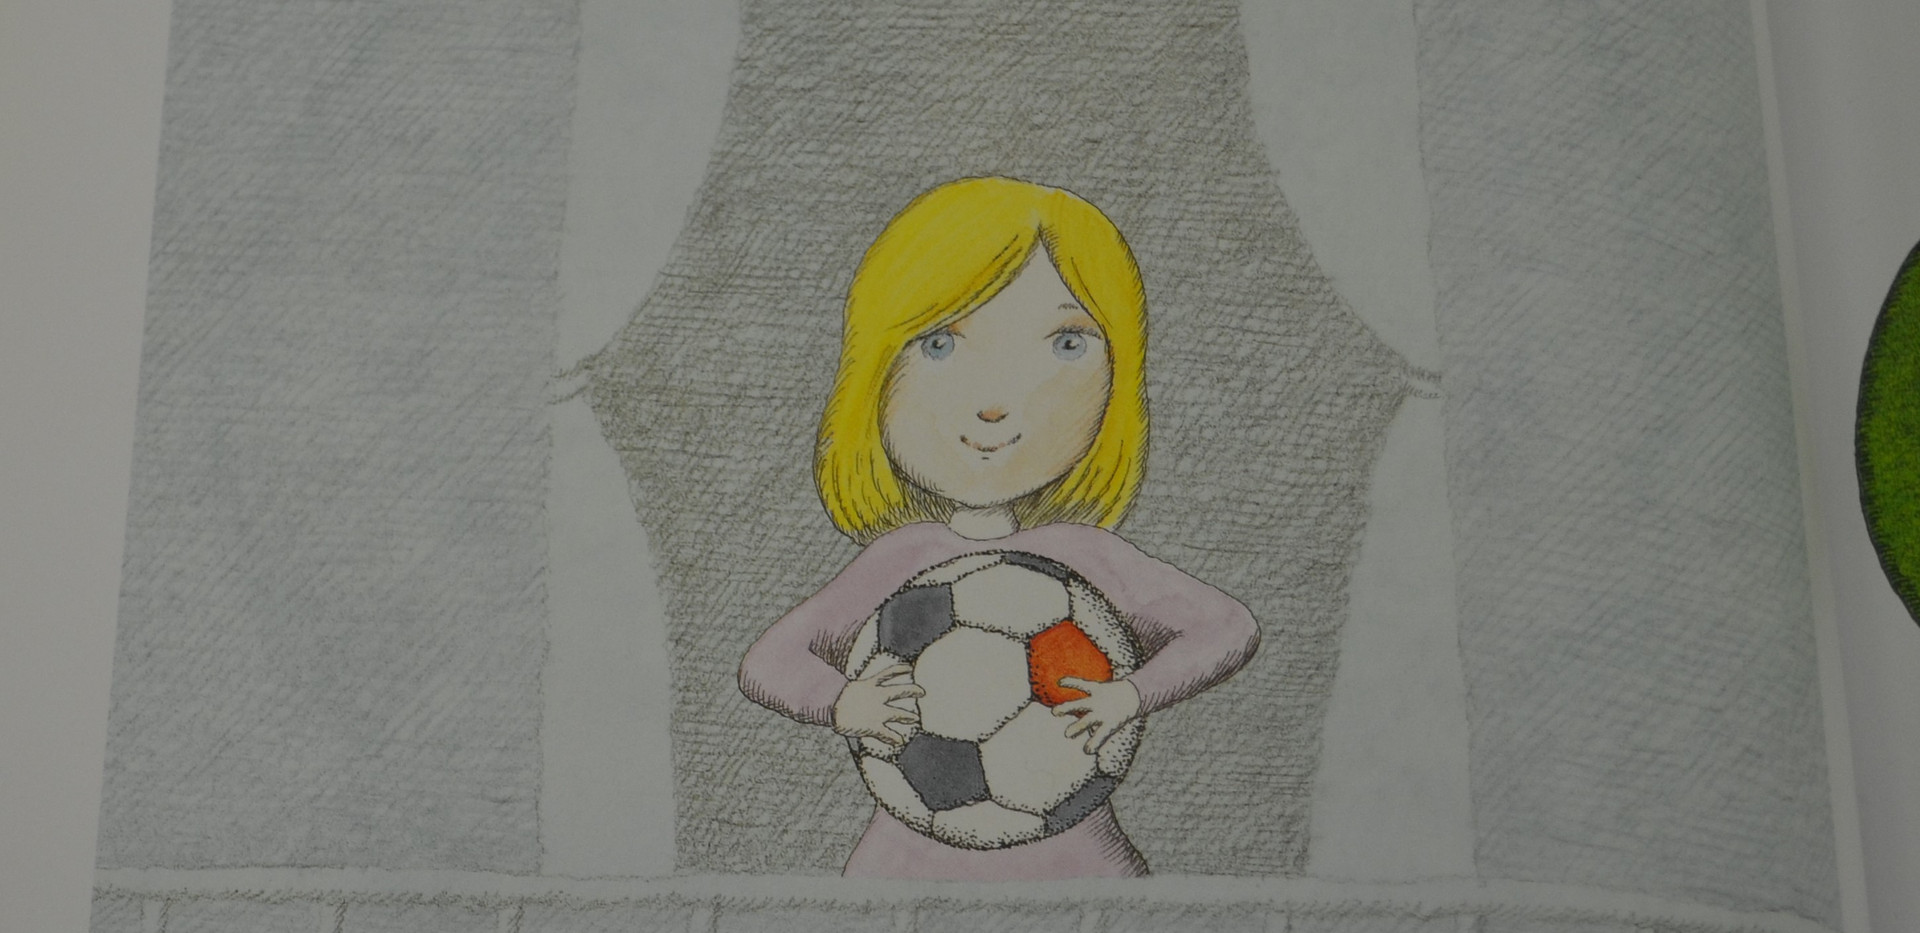 Sis, Peter. Madlenka, Soccer Star. Farrar, Straus and Giroux, 2010. p.1 Osborne Collection of Early Children's Books.